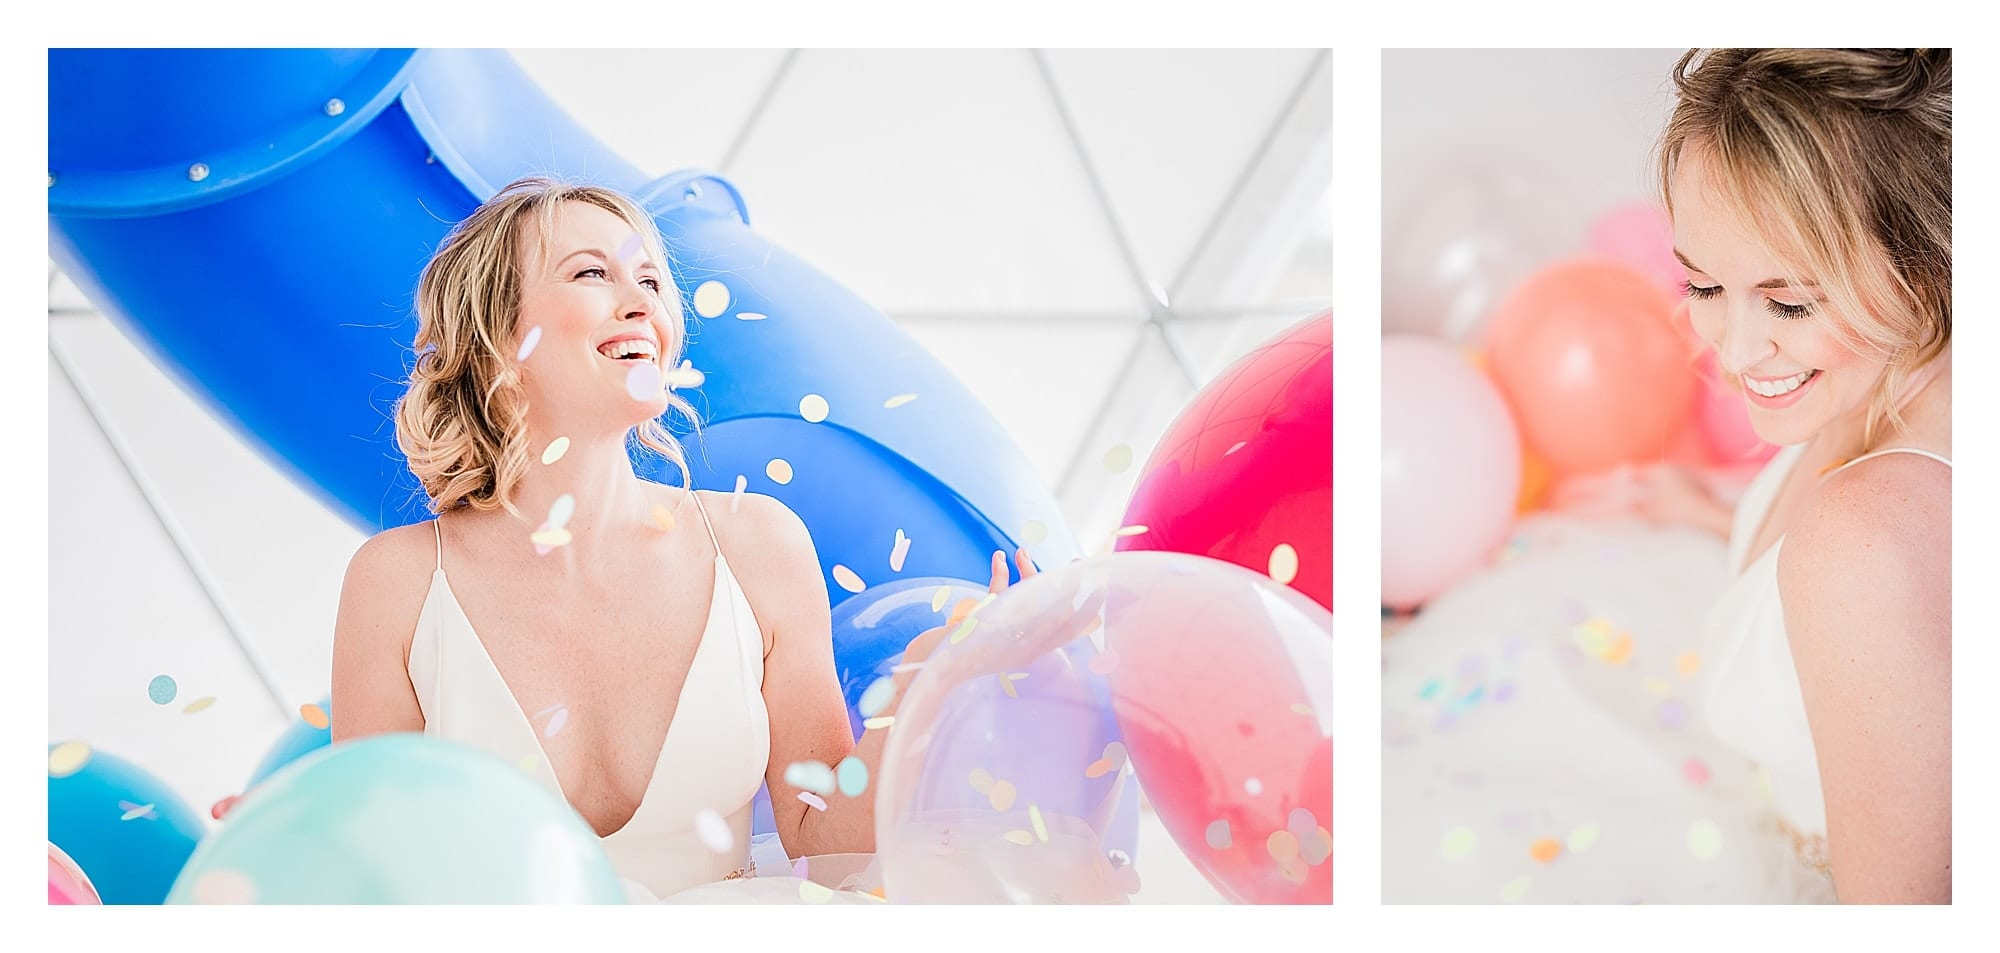 Bride in wedding dress laughing surrounded by many multi colored balloons